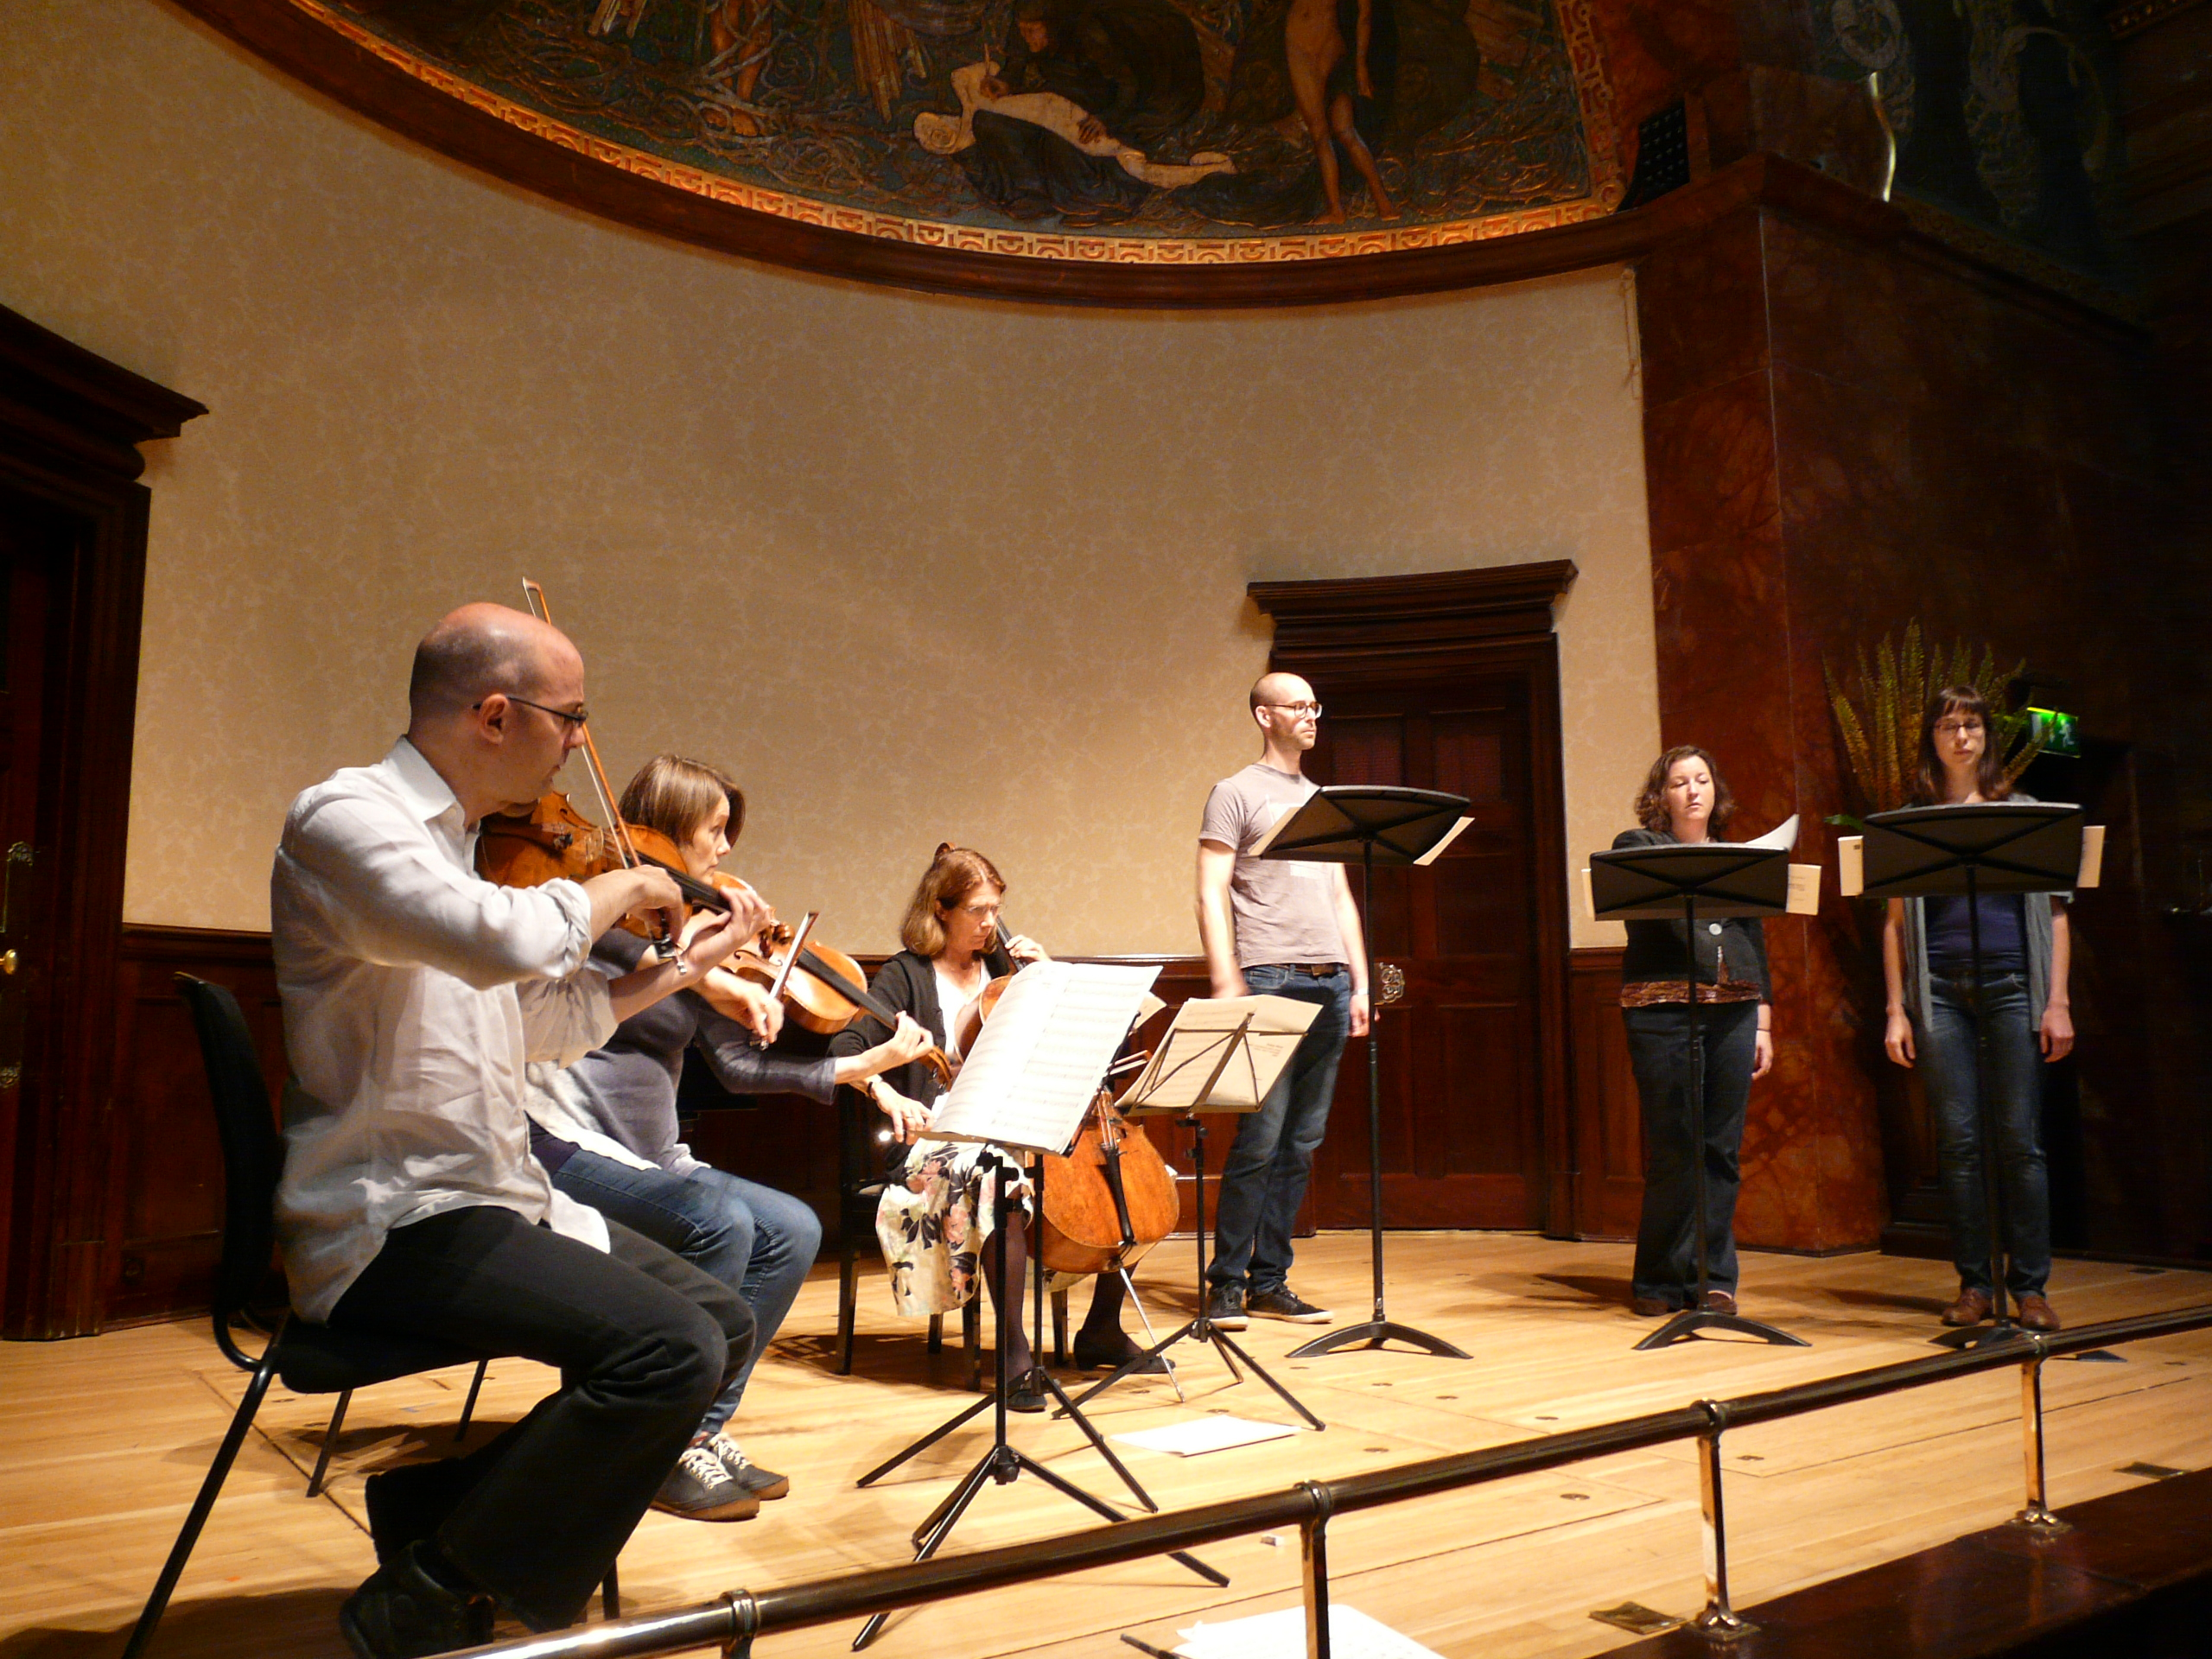 Endymion and EXAUDI rehearsing at Wigmore Hall